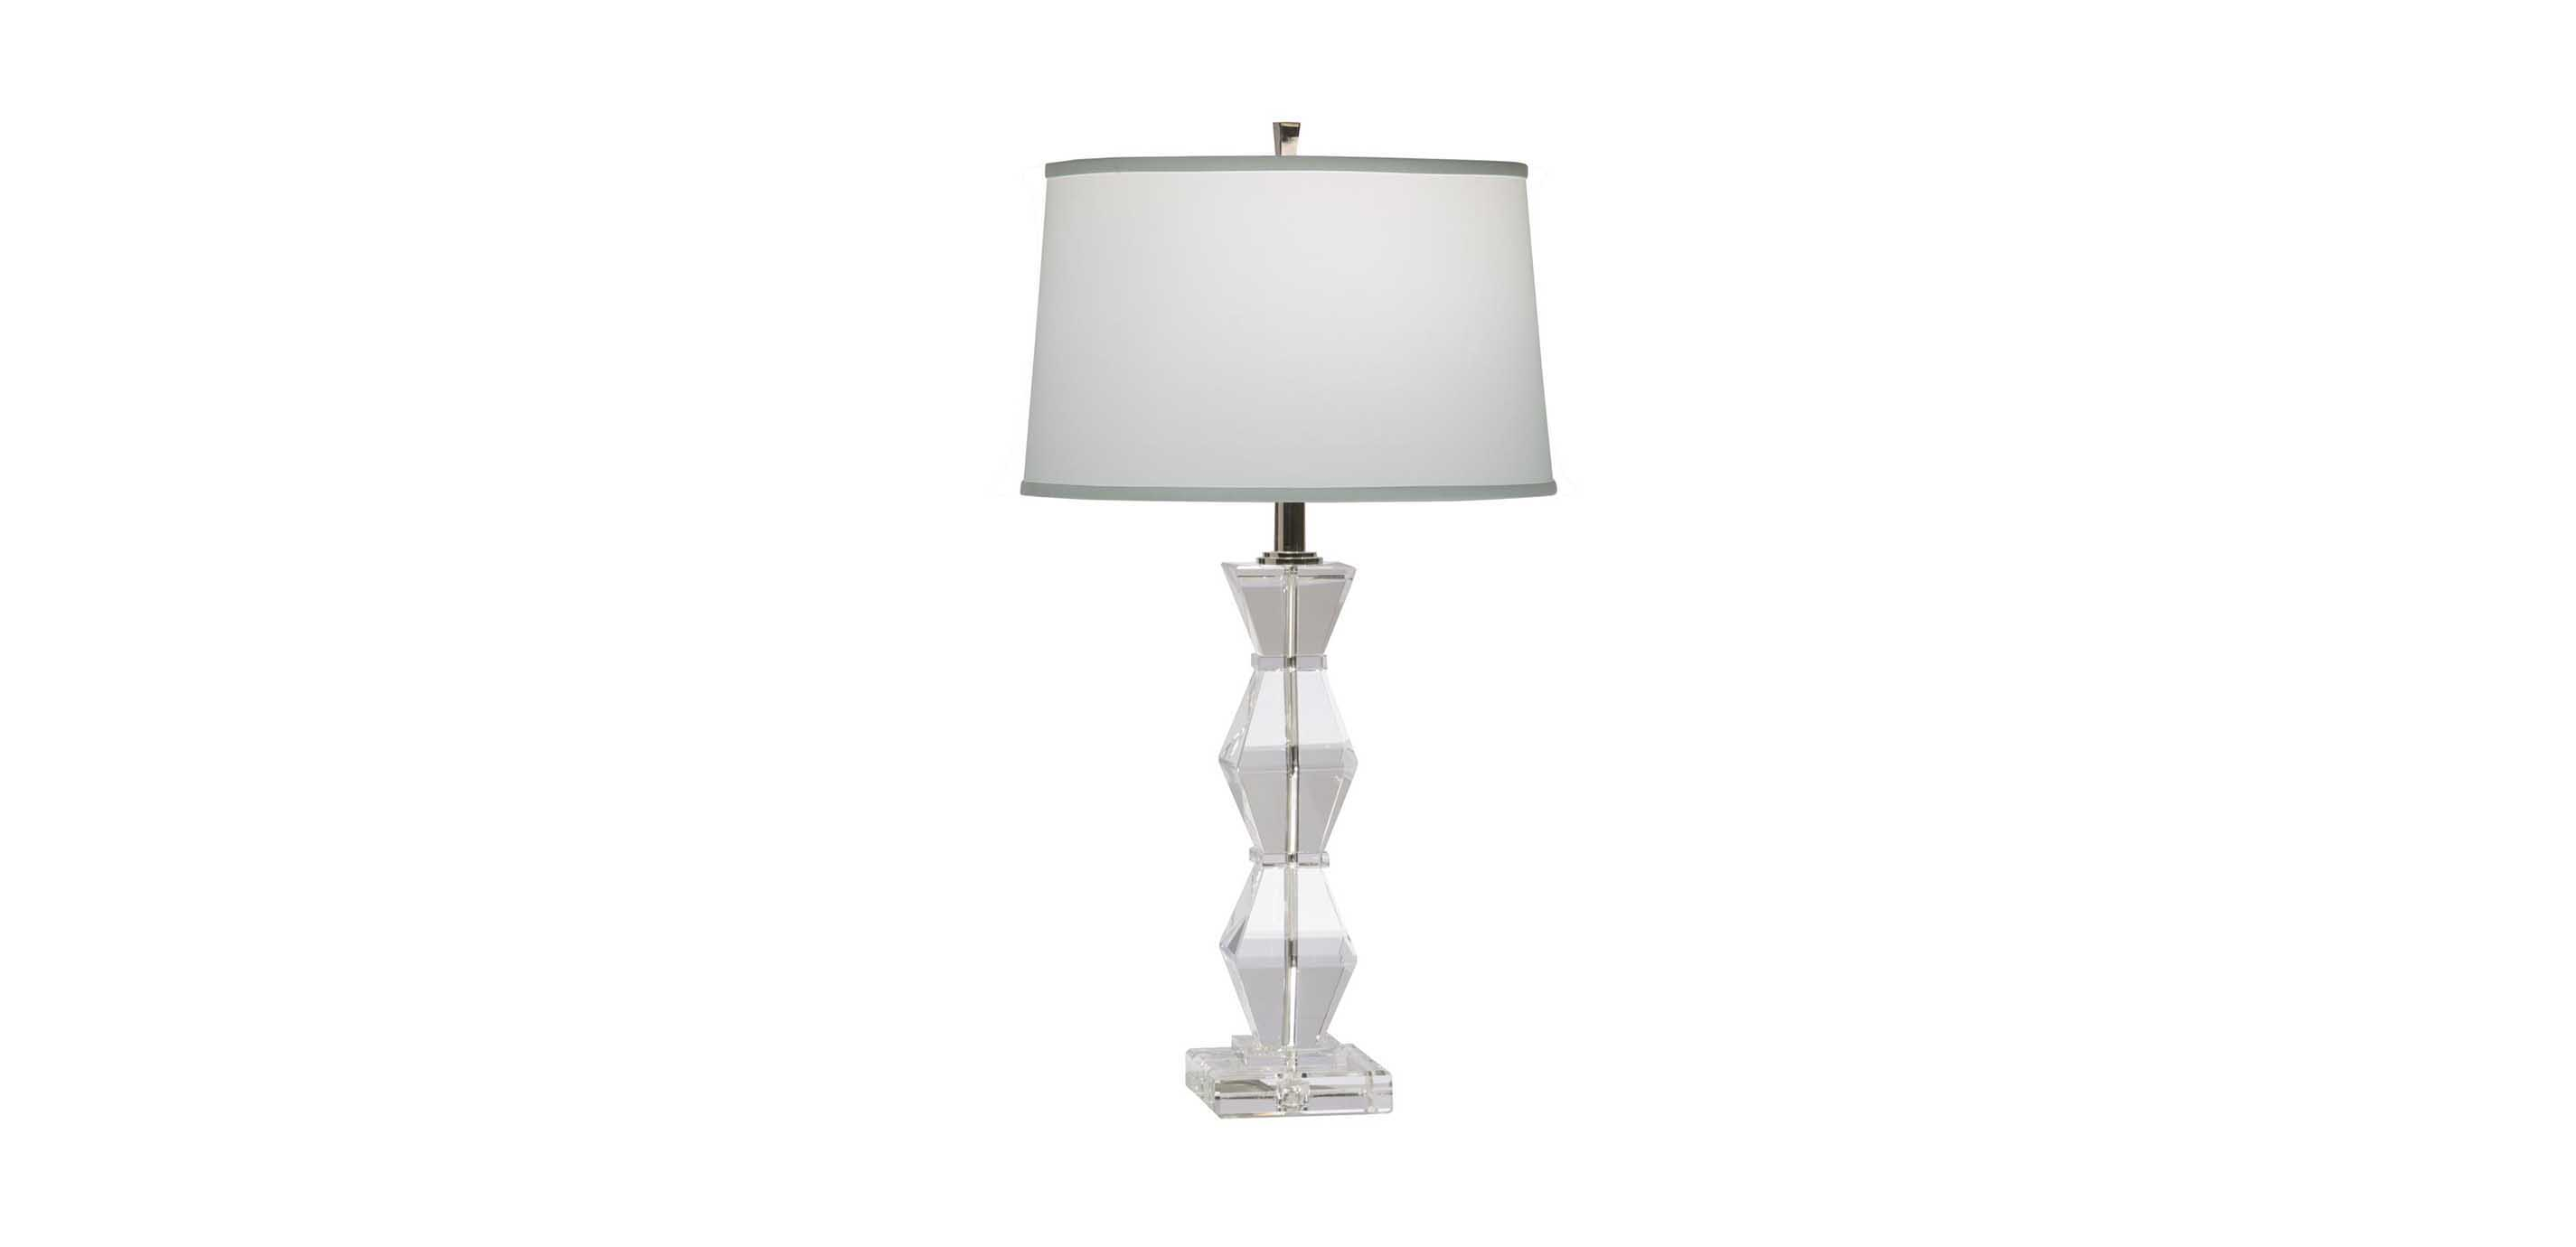 Geometric Crystal Table Lamp Table Lamps